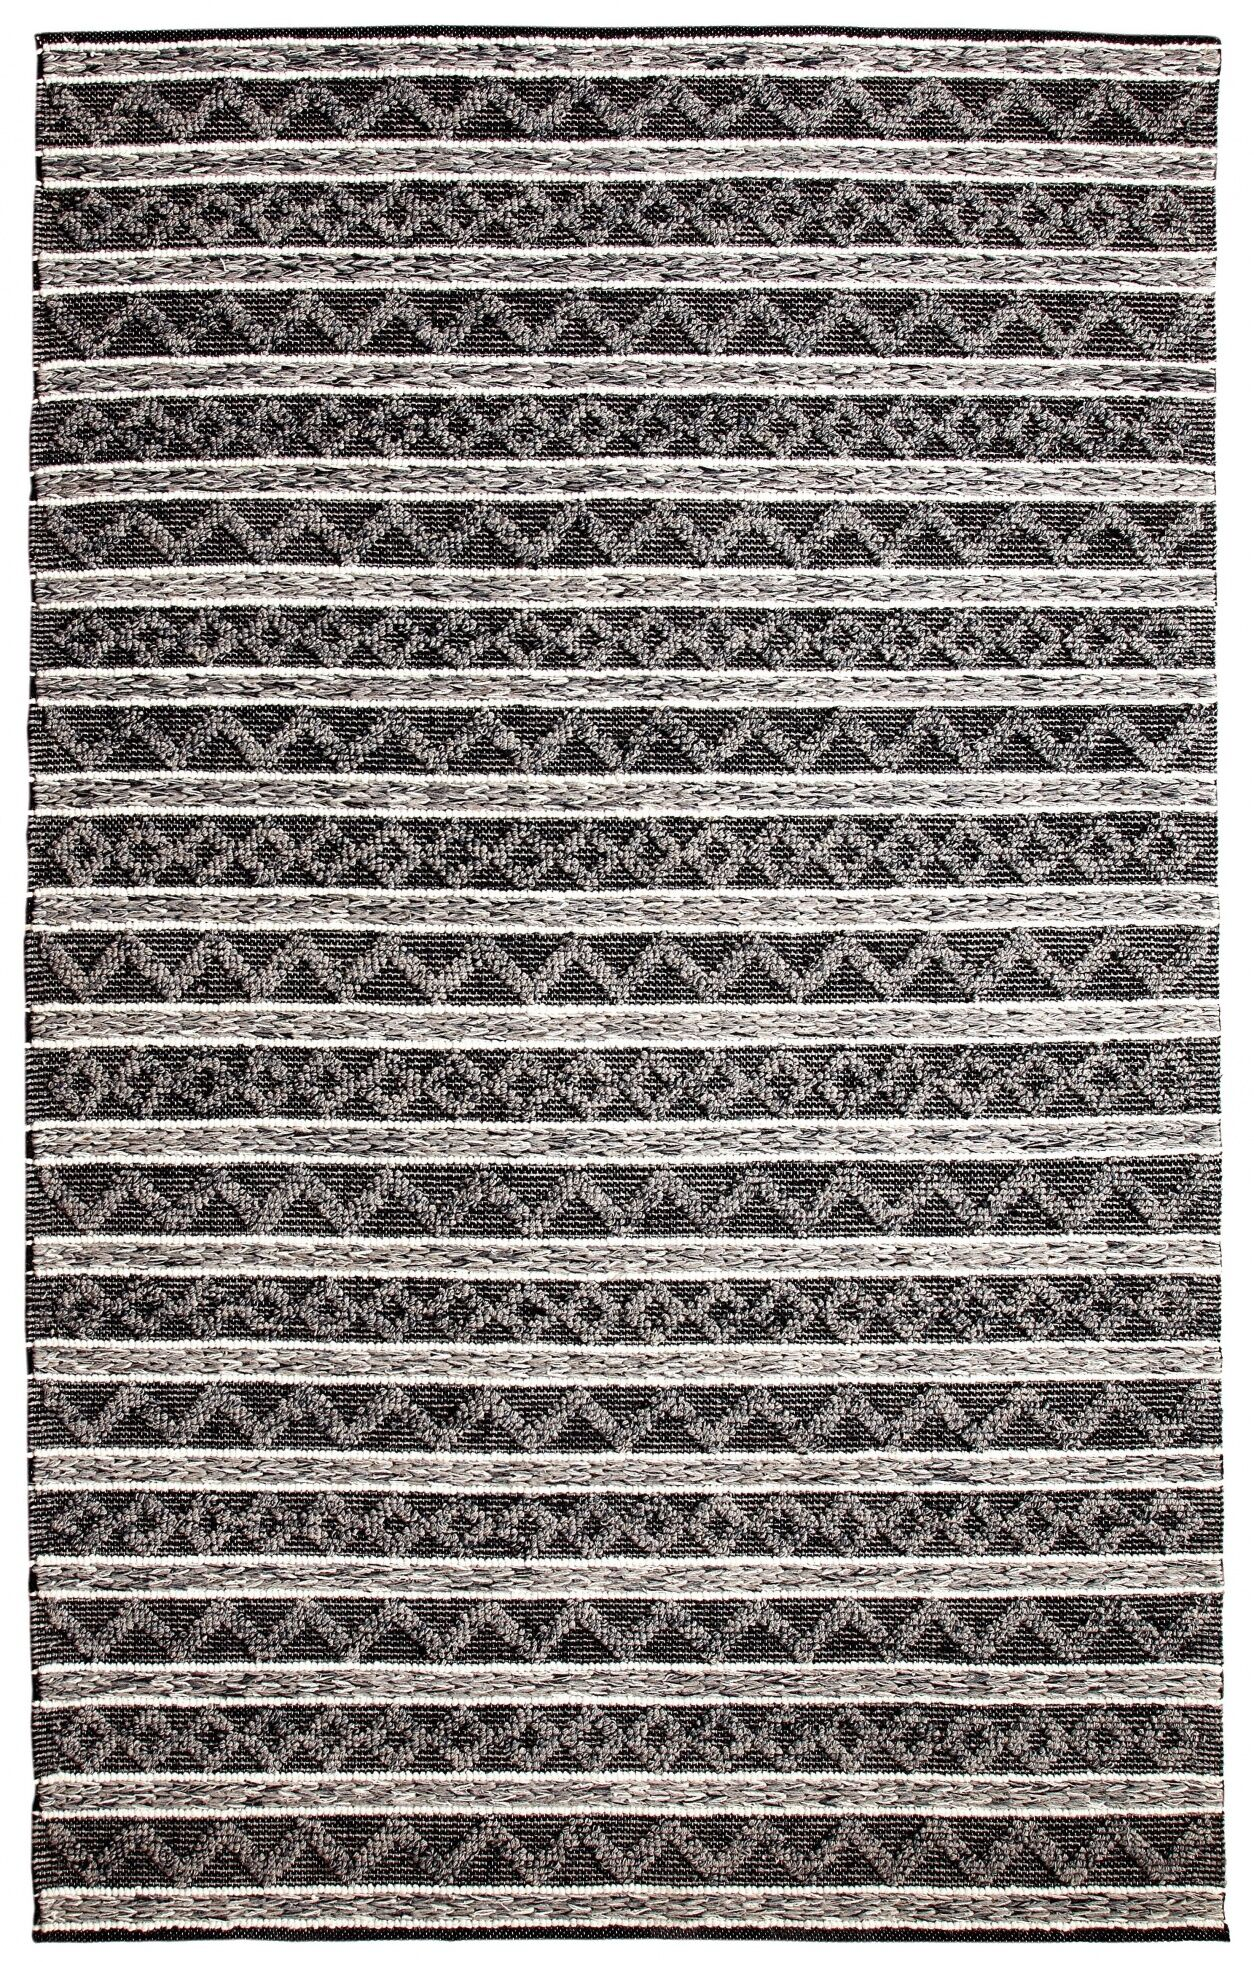 Edwa Hand-Woven Charcoal/Silver Area Rug Rug Size: Rectangle 2' x 4'